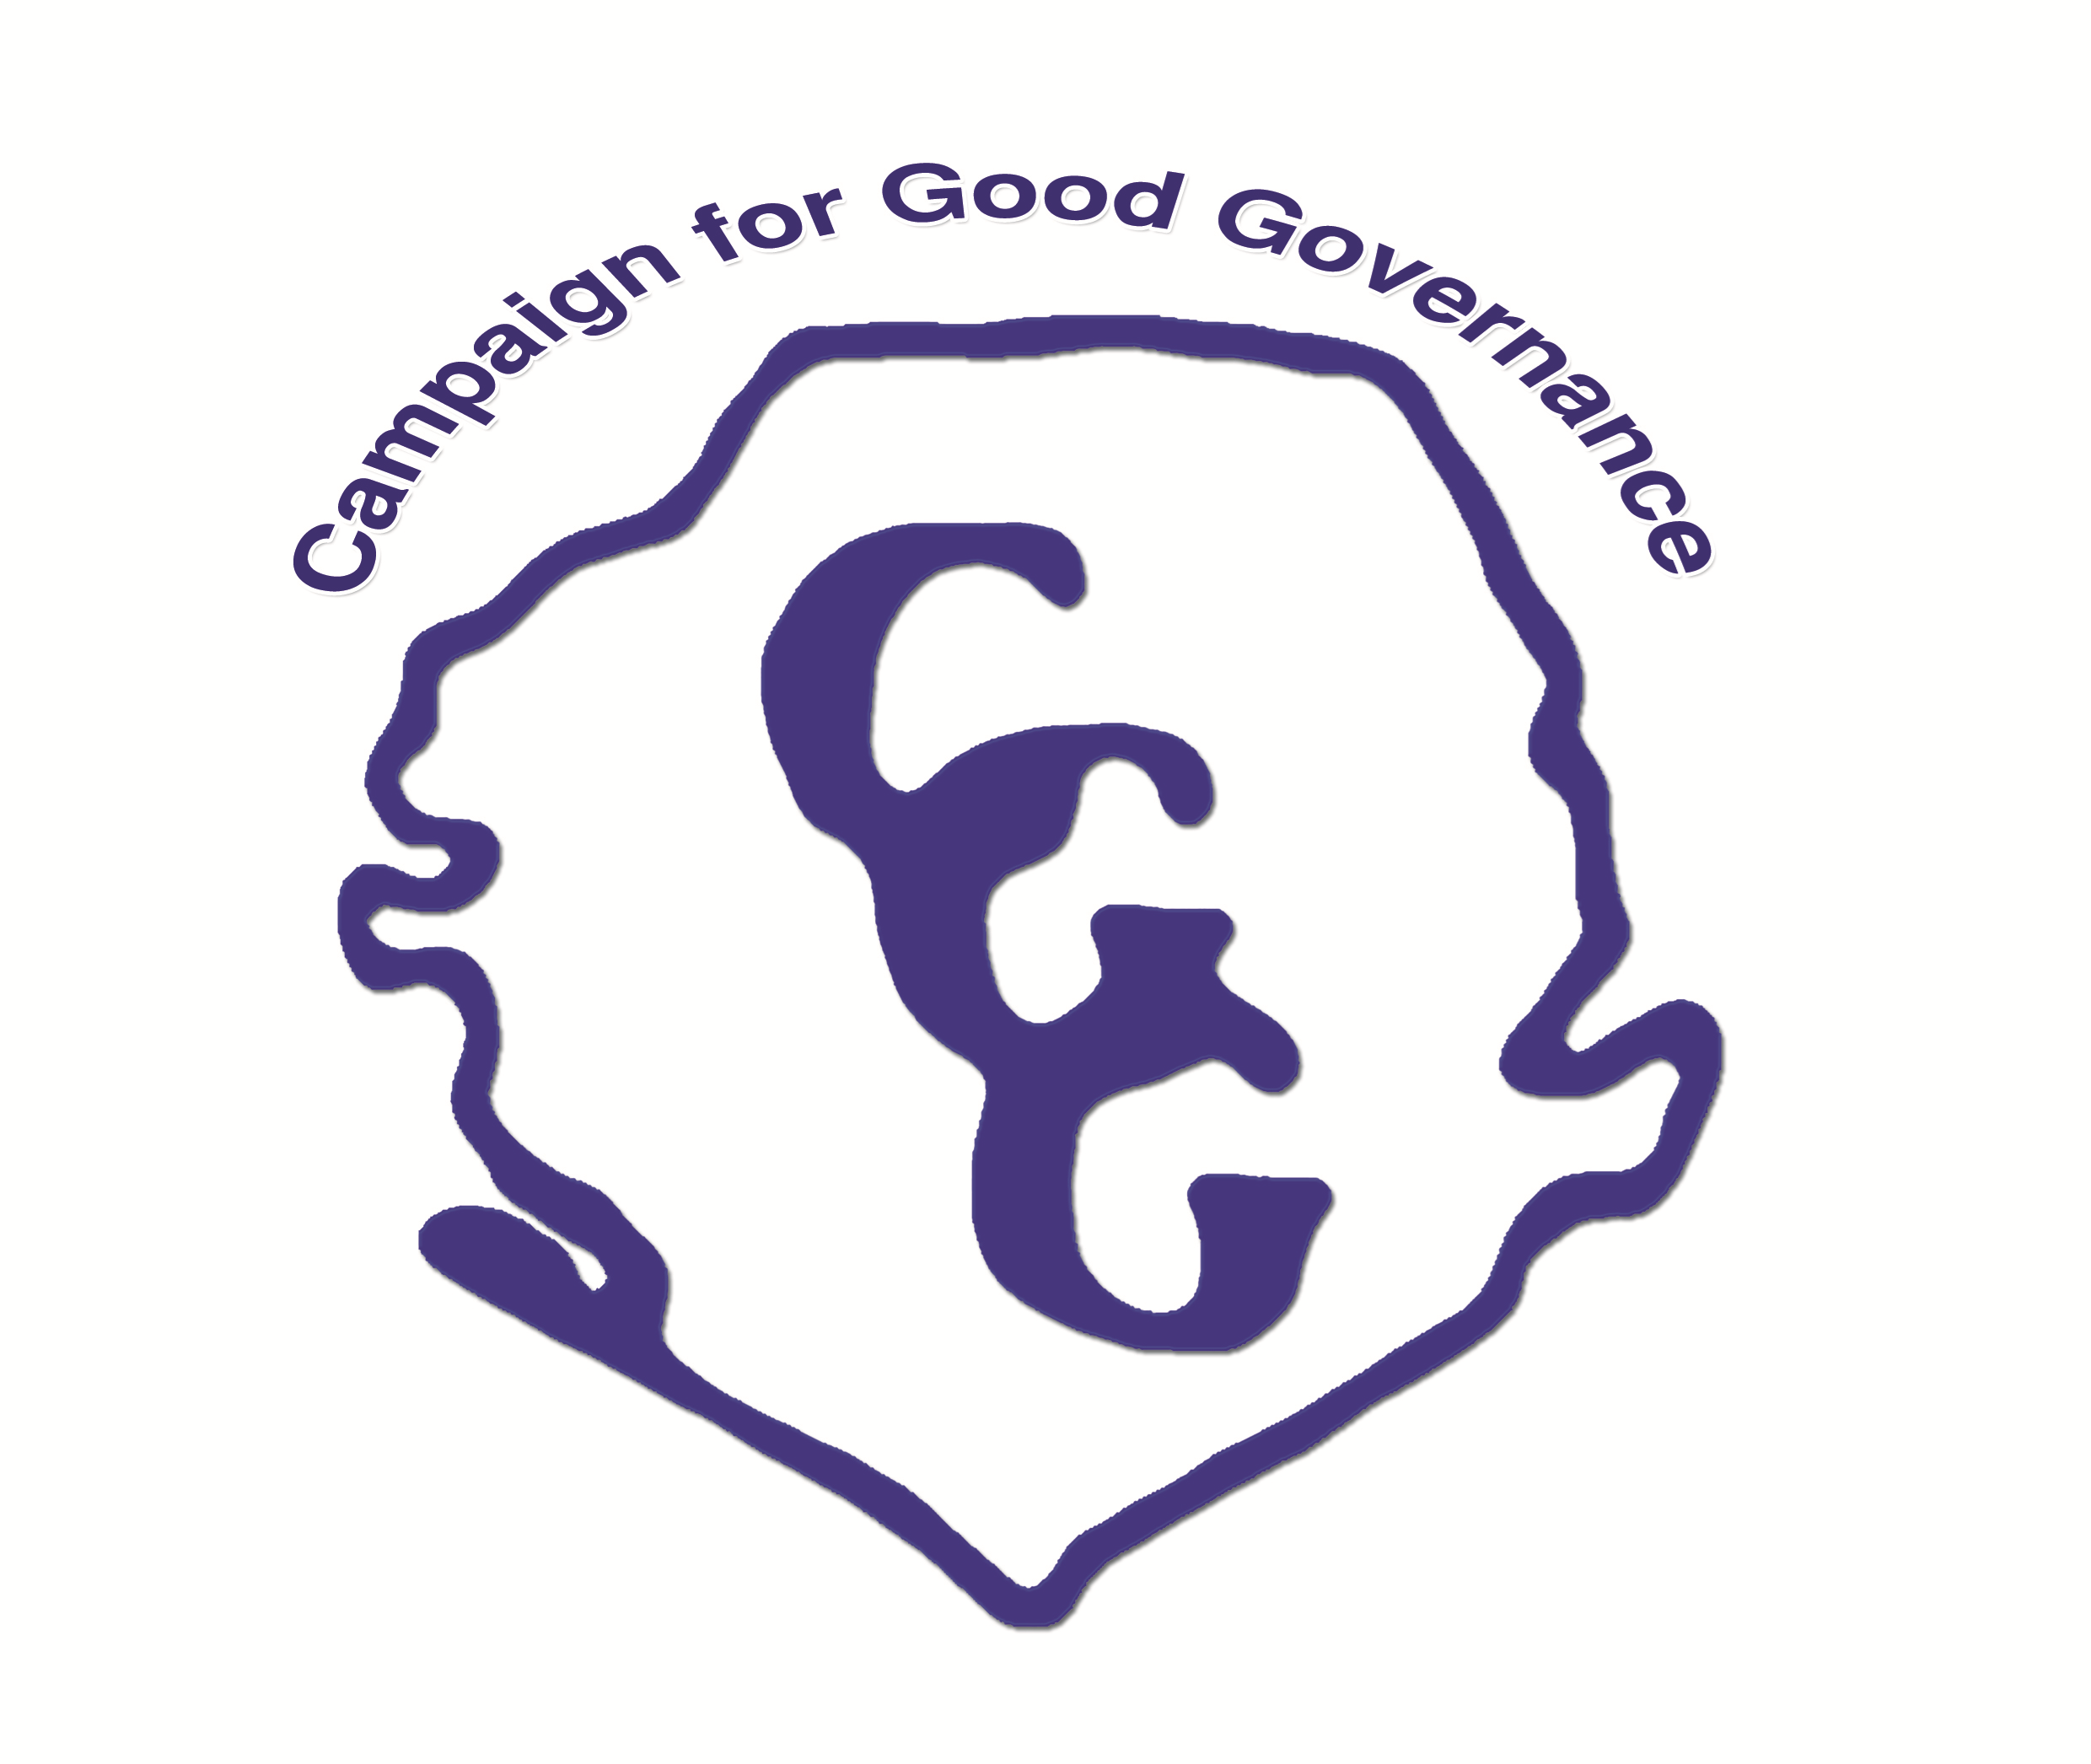 Campaign for Good Governance (CGG)